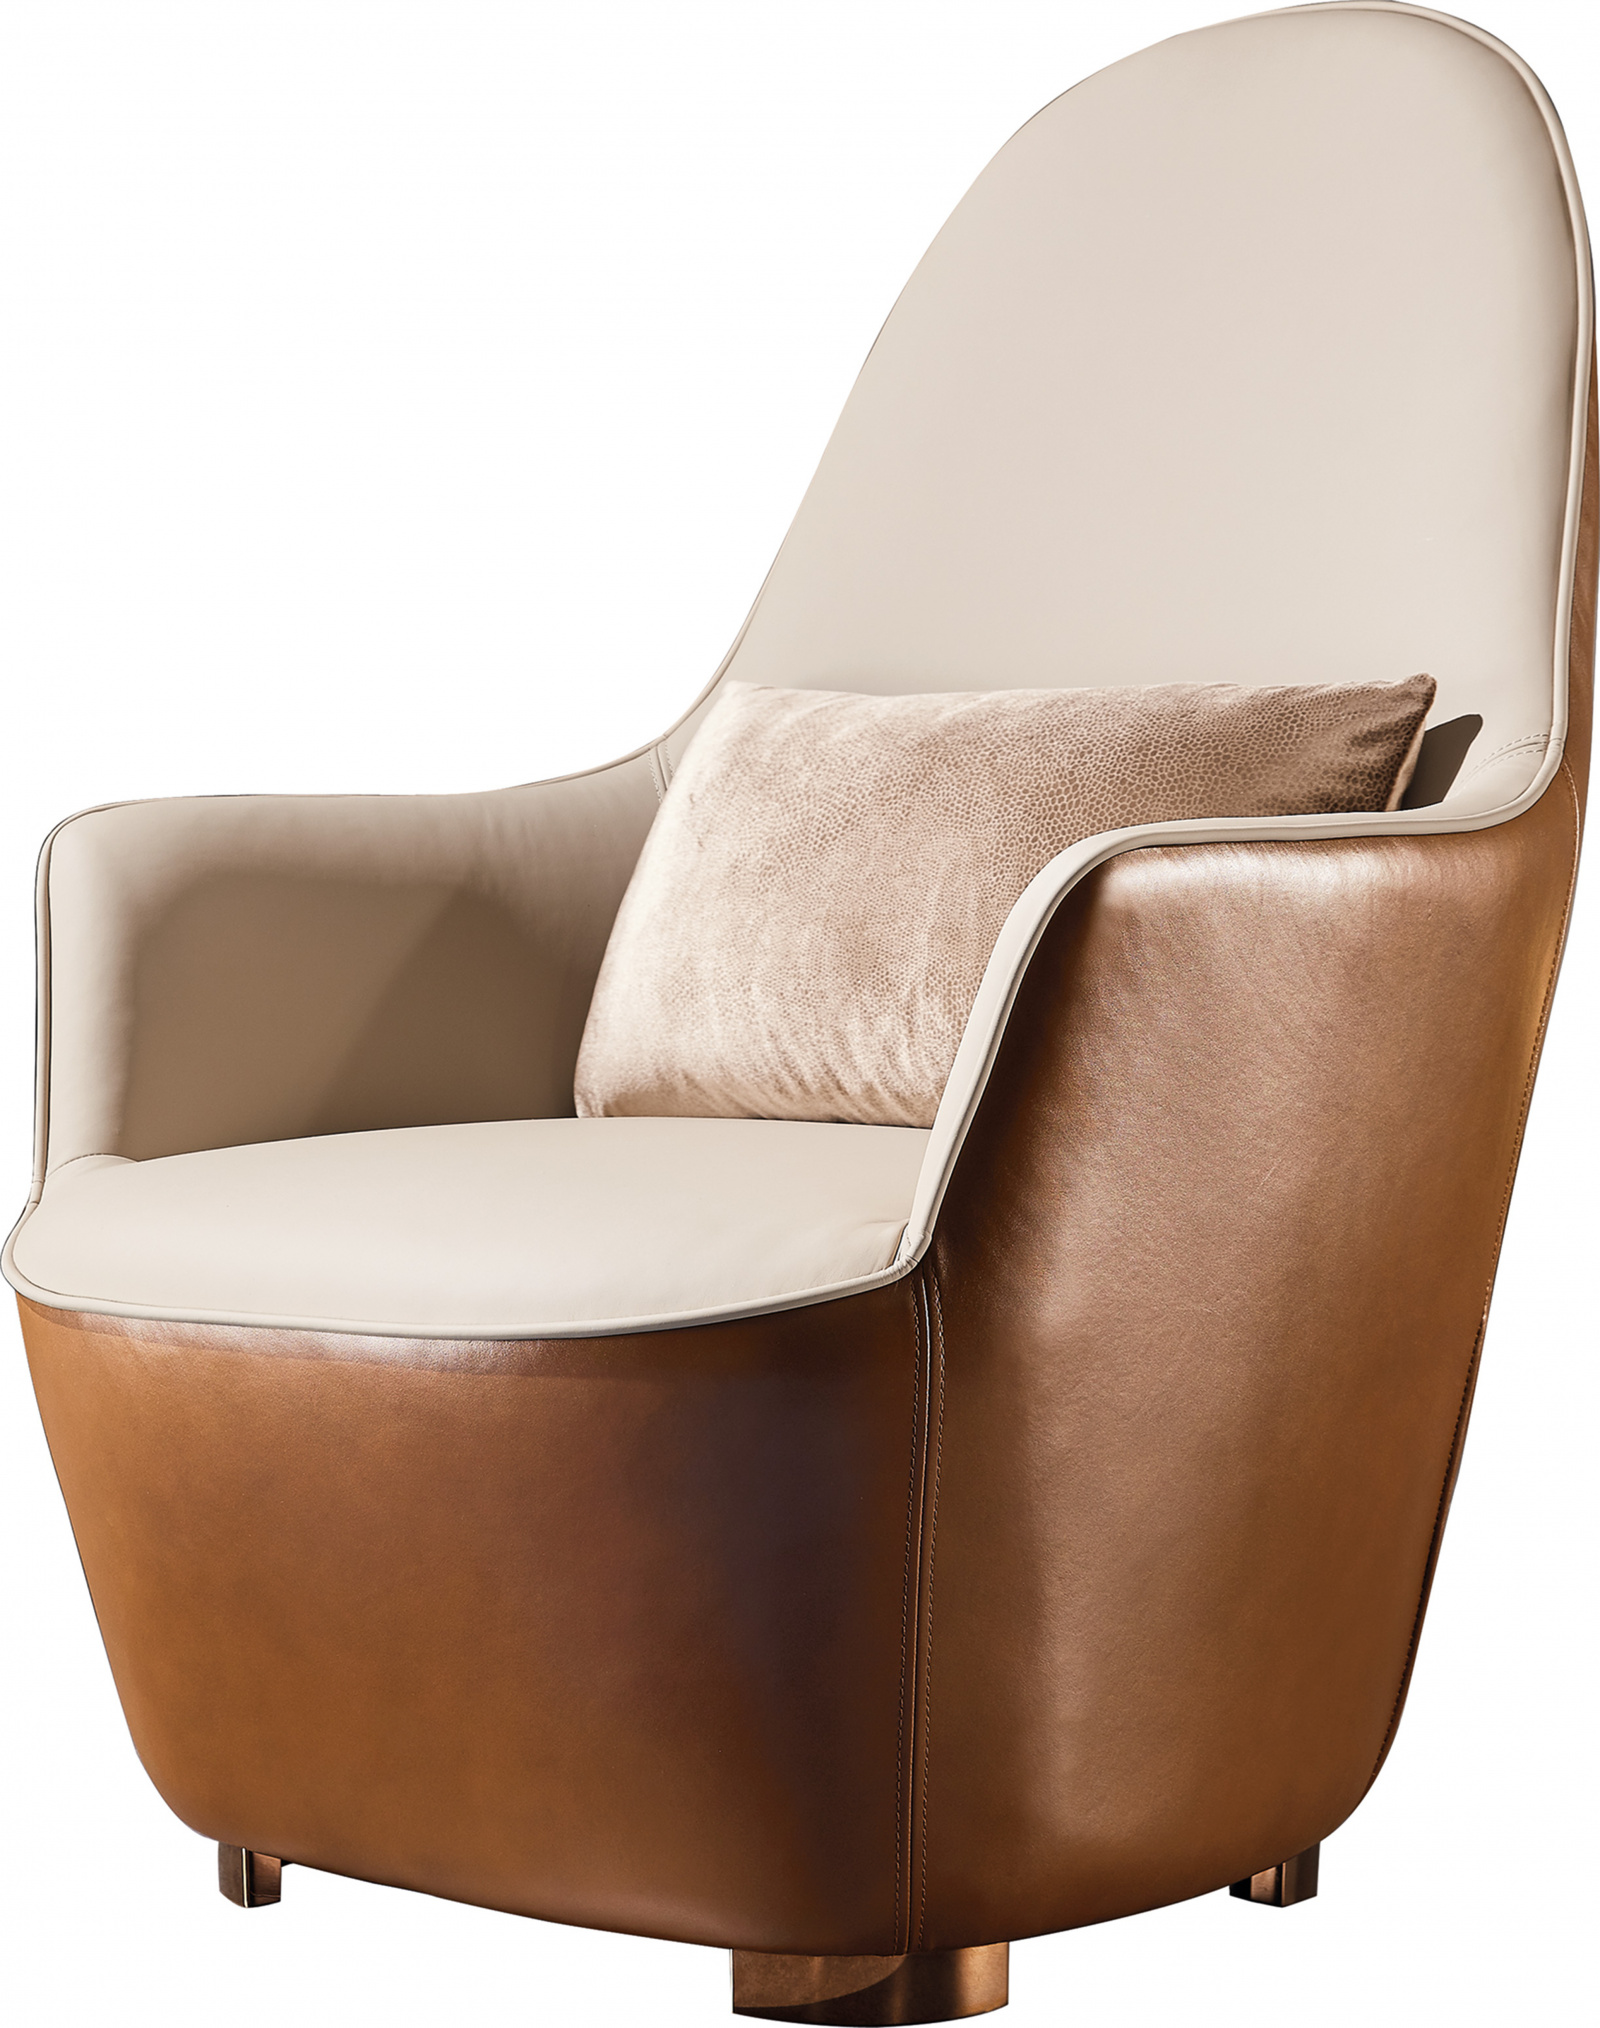 Дизайнерское кресло 916 Meadow Accent Chair BREEZE DECORATION